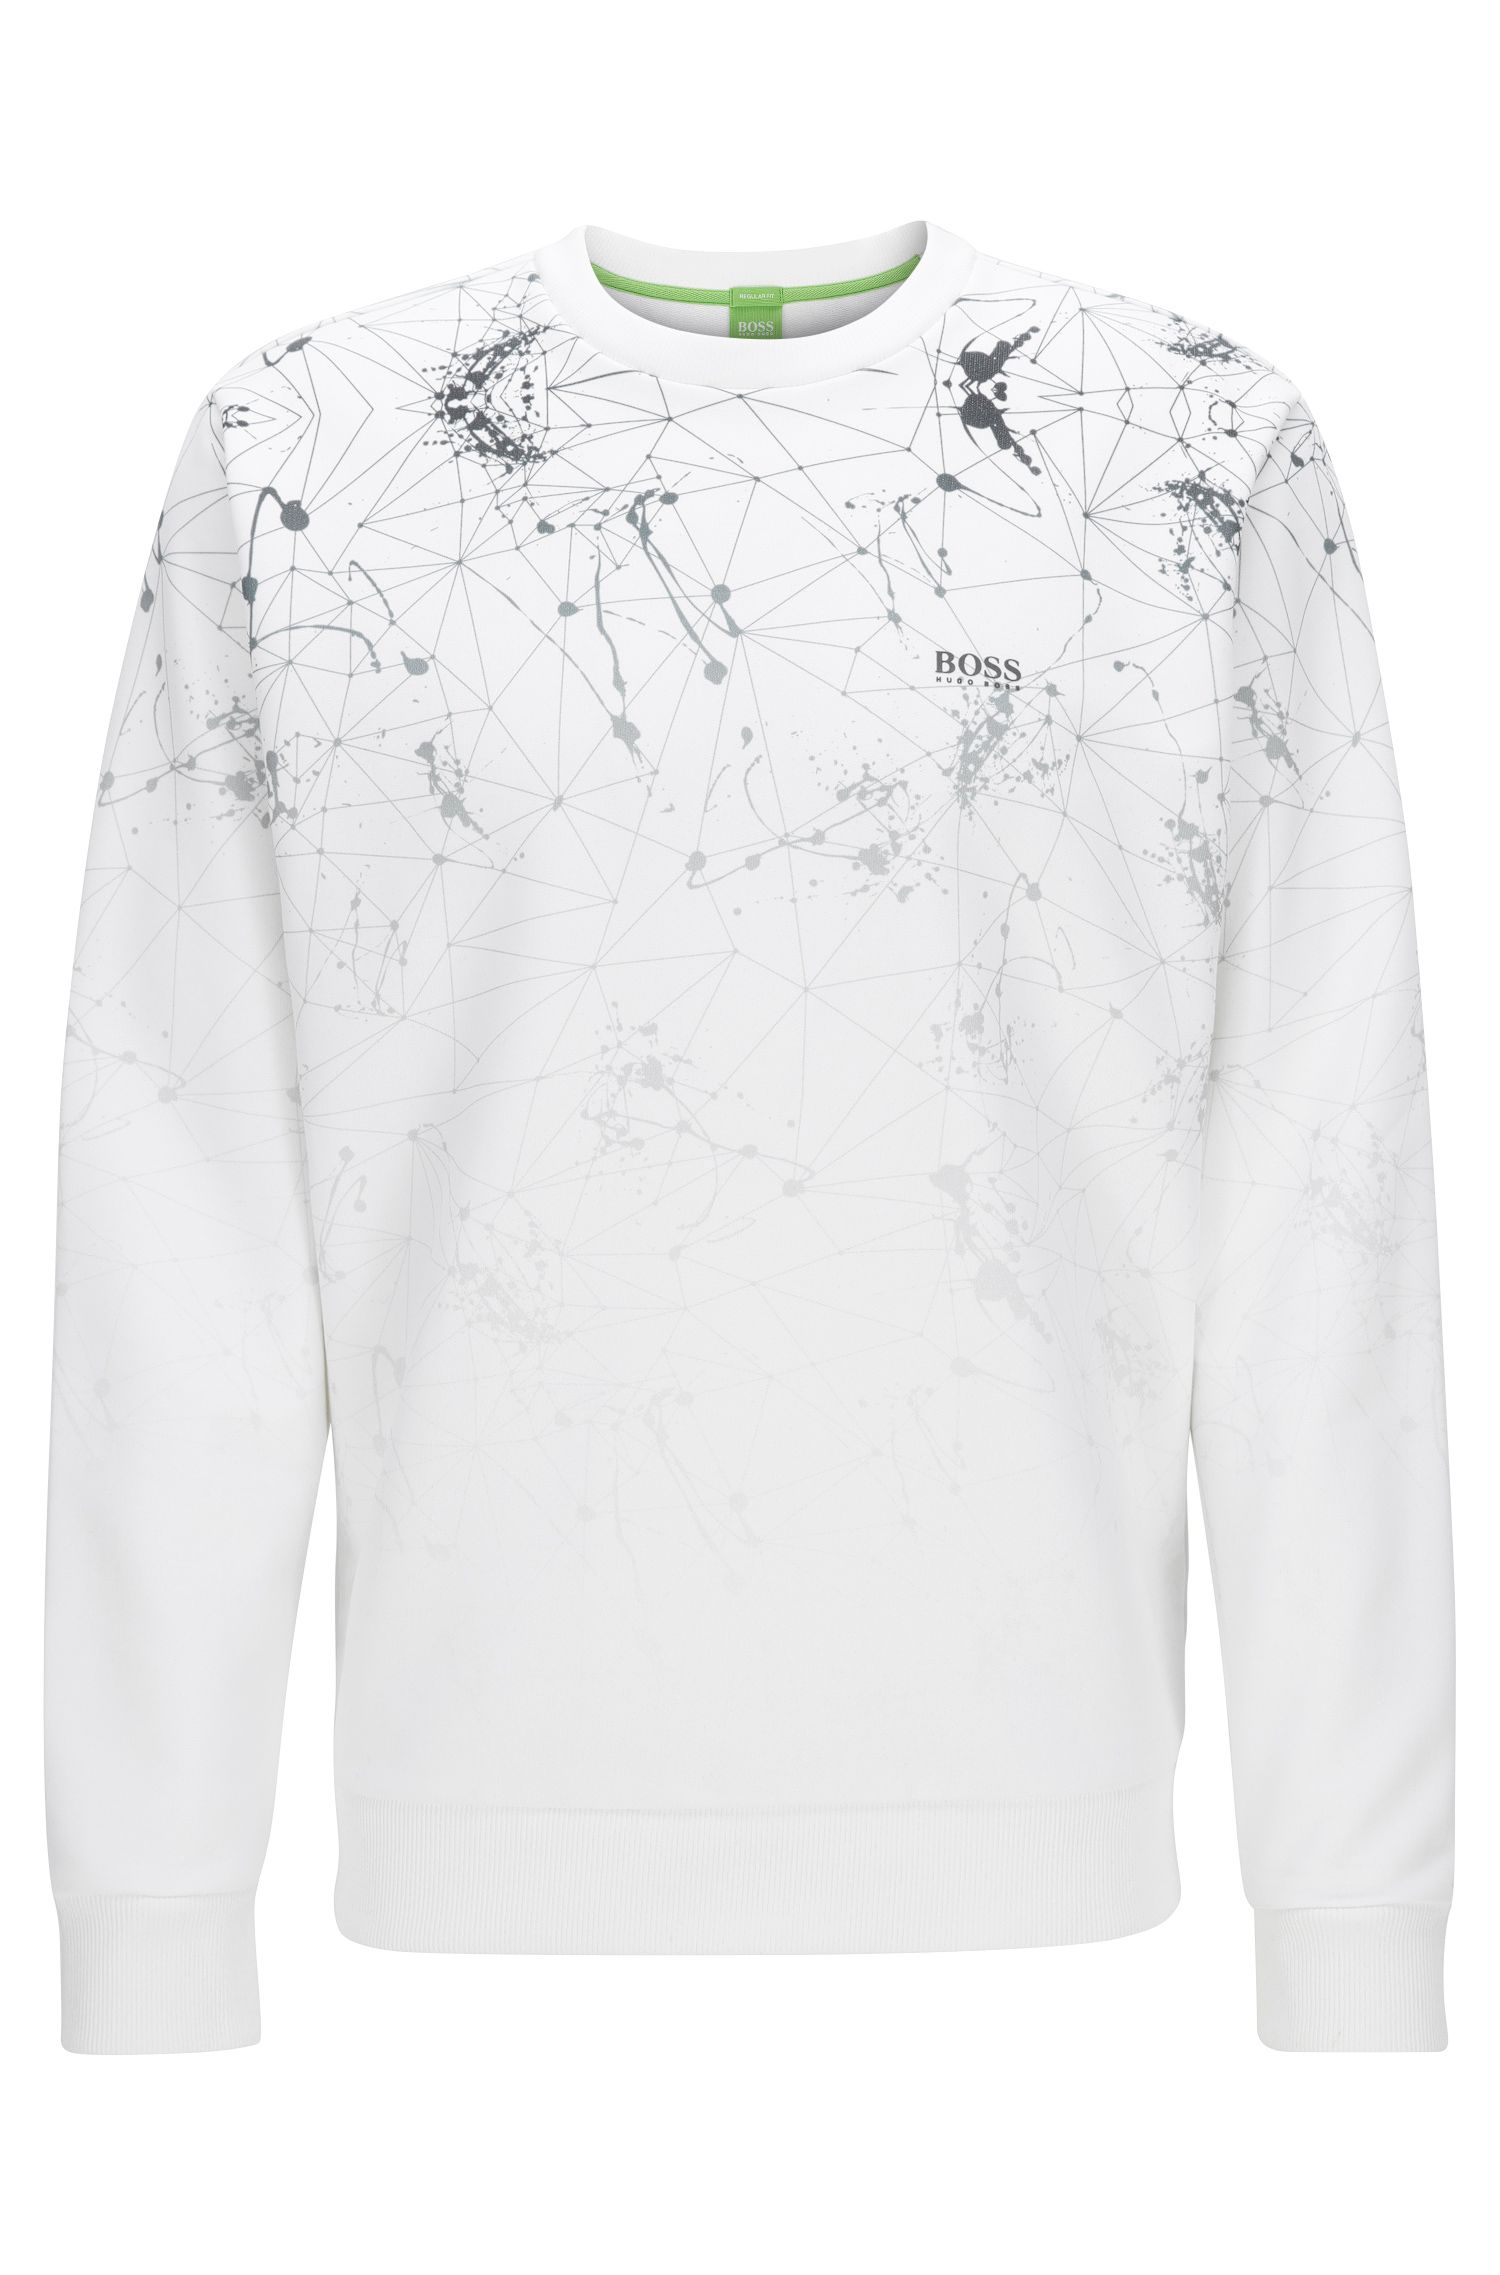 Stretch Cotton Sweatshirt | Swelock